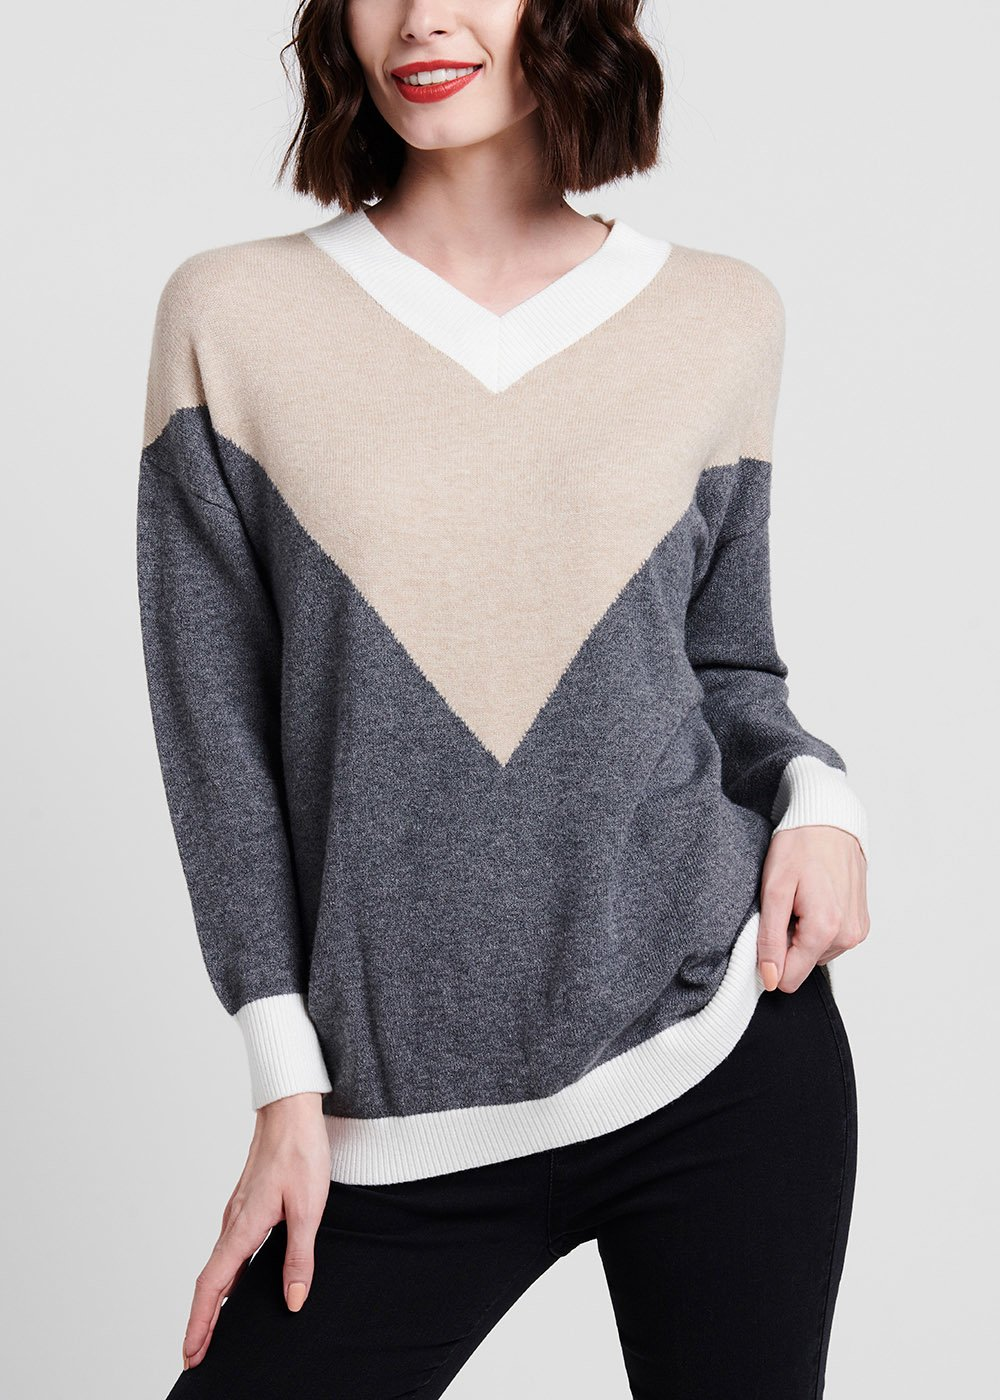 V-neck viscose sweater - Light Grey / Light Beige / White - Woman